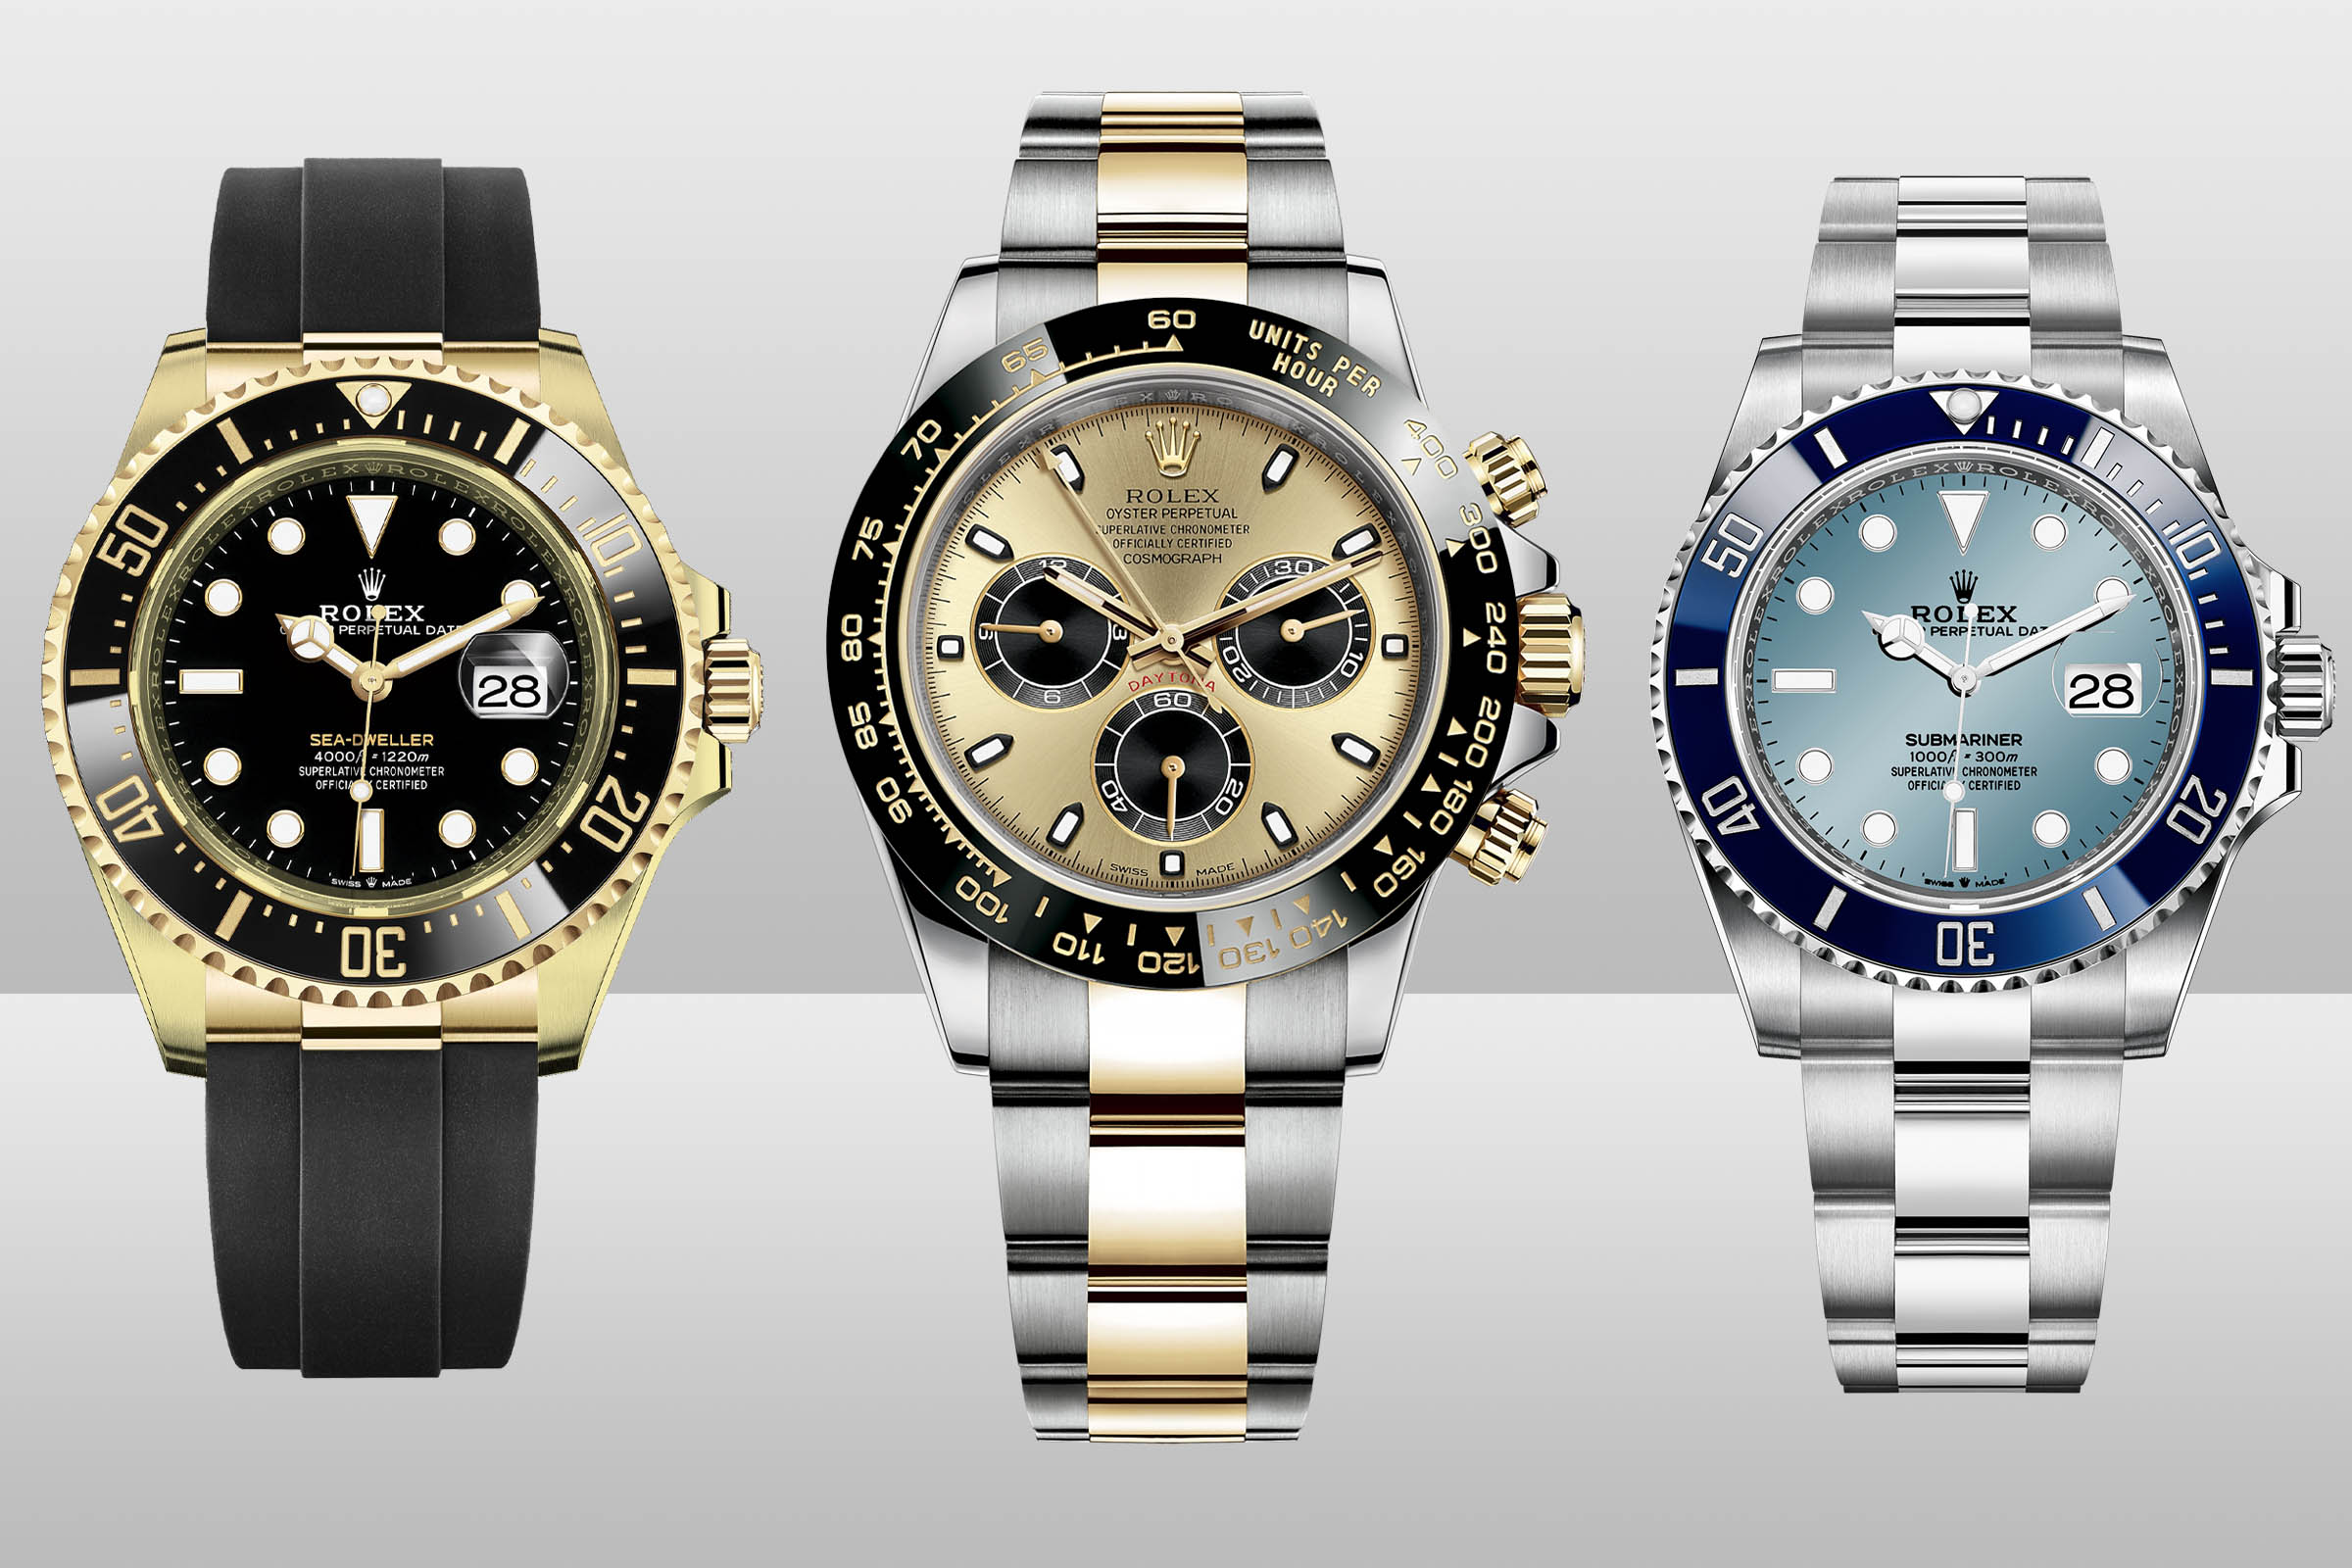 Rolex Predictions 2021 - Rolex New models 2021 - New Versions Submariner Daytona Sea-Dweller 2021